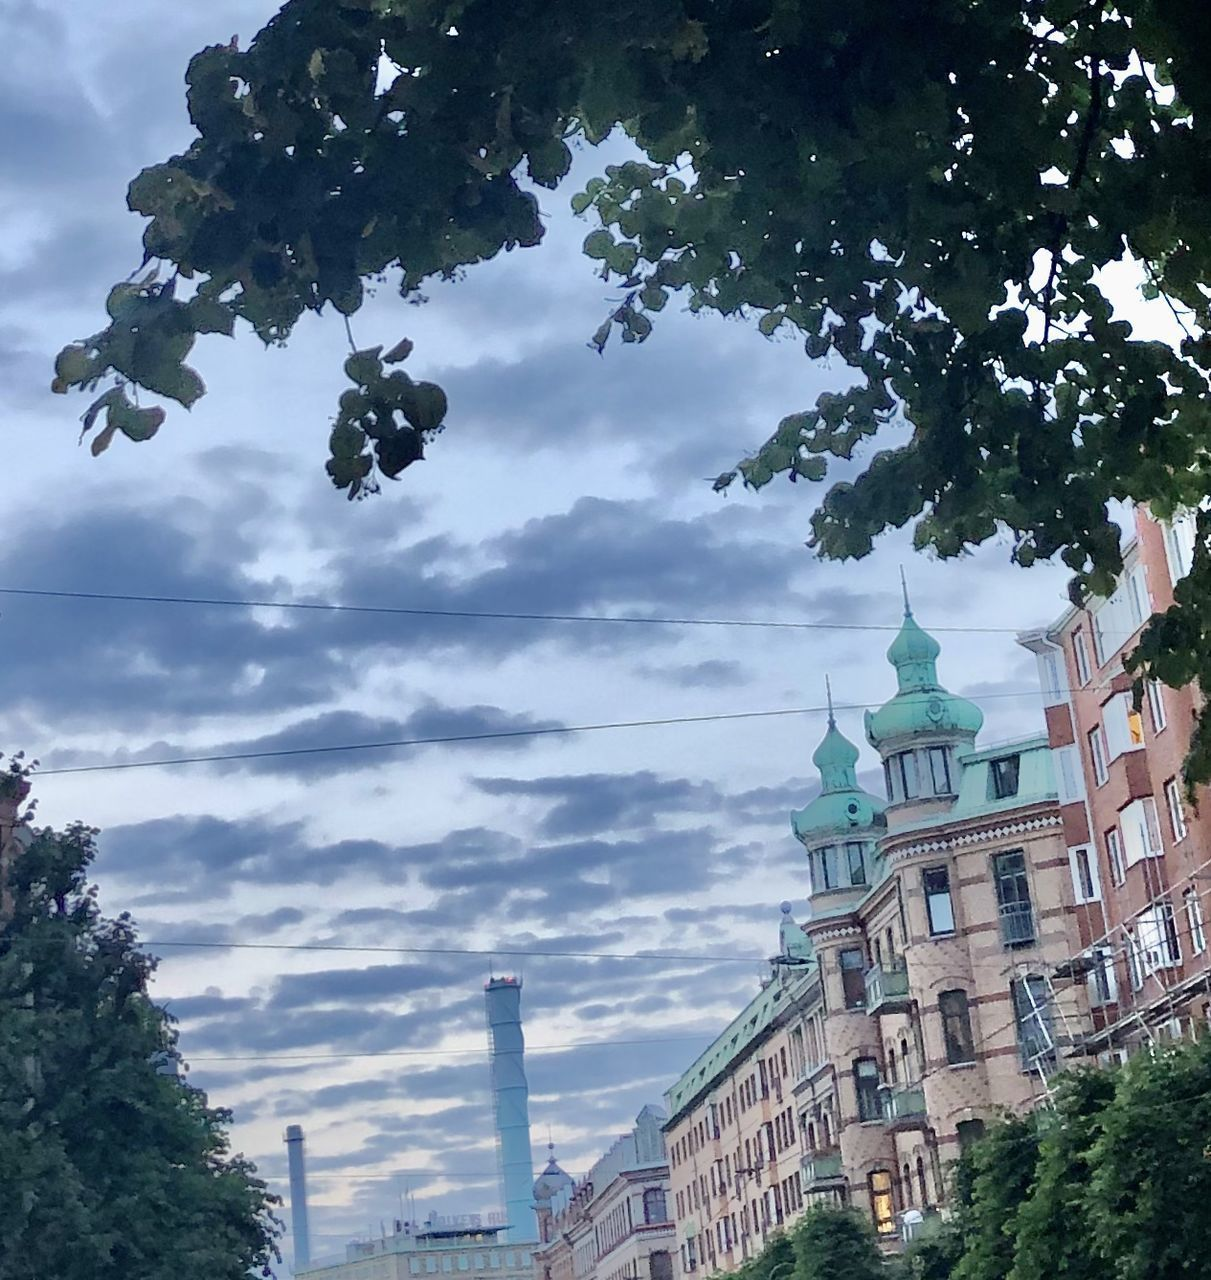 LOW ANGLE VIEW OF BUILDINGS AND TREES AGAINST SKY